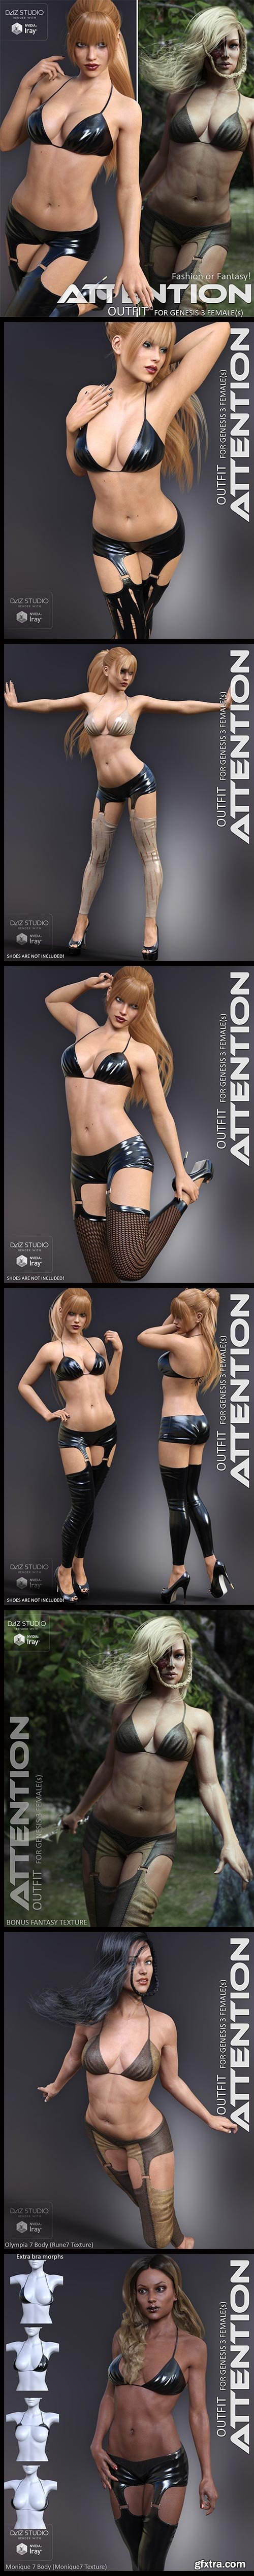 Renderosity - Attention Outfit for Genesis 3 Females 119342 DAZ3D